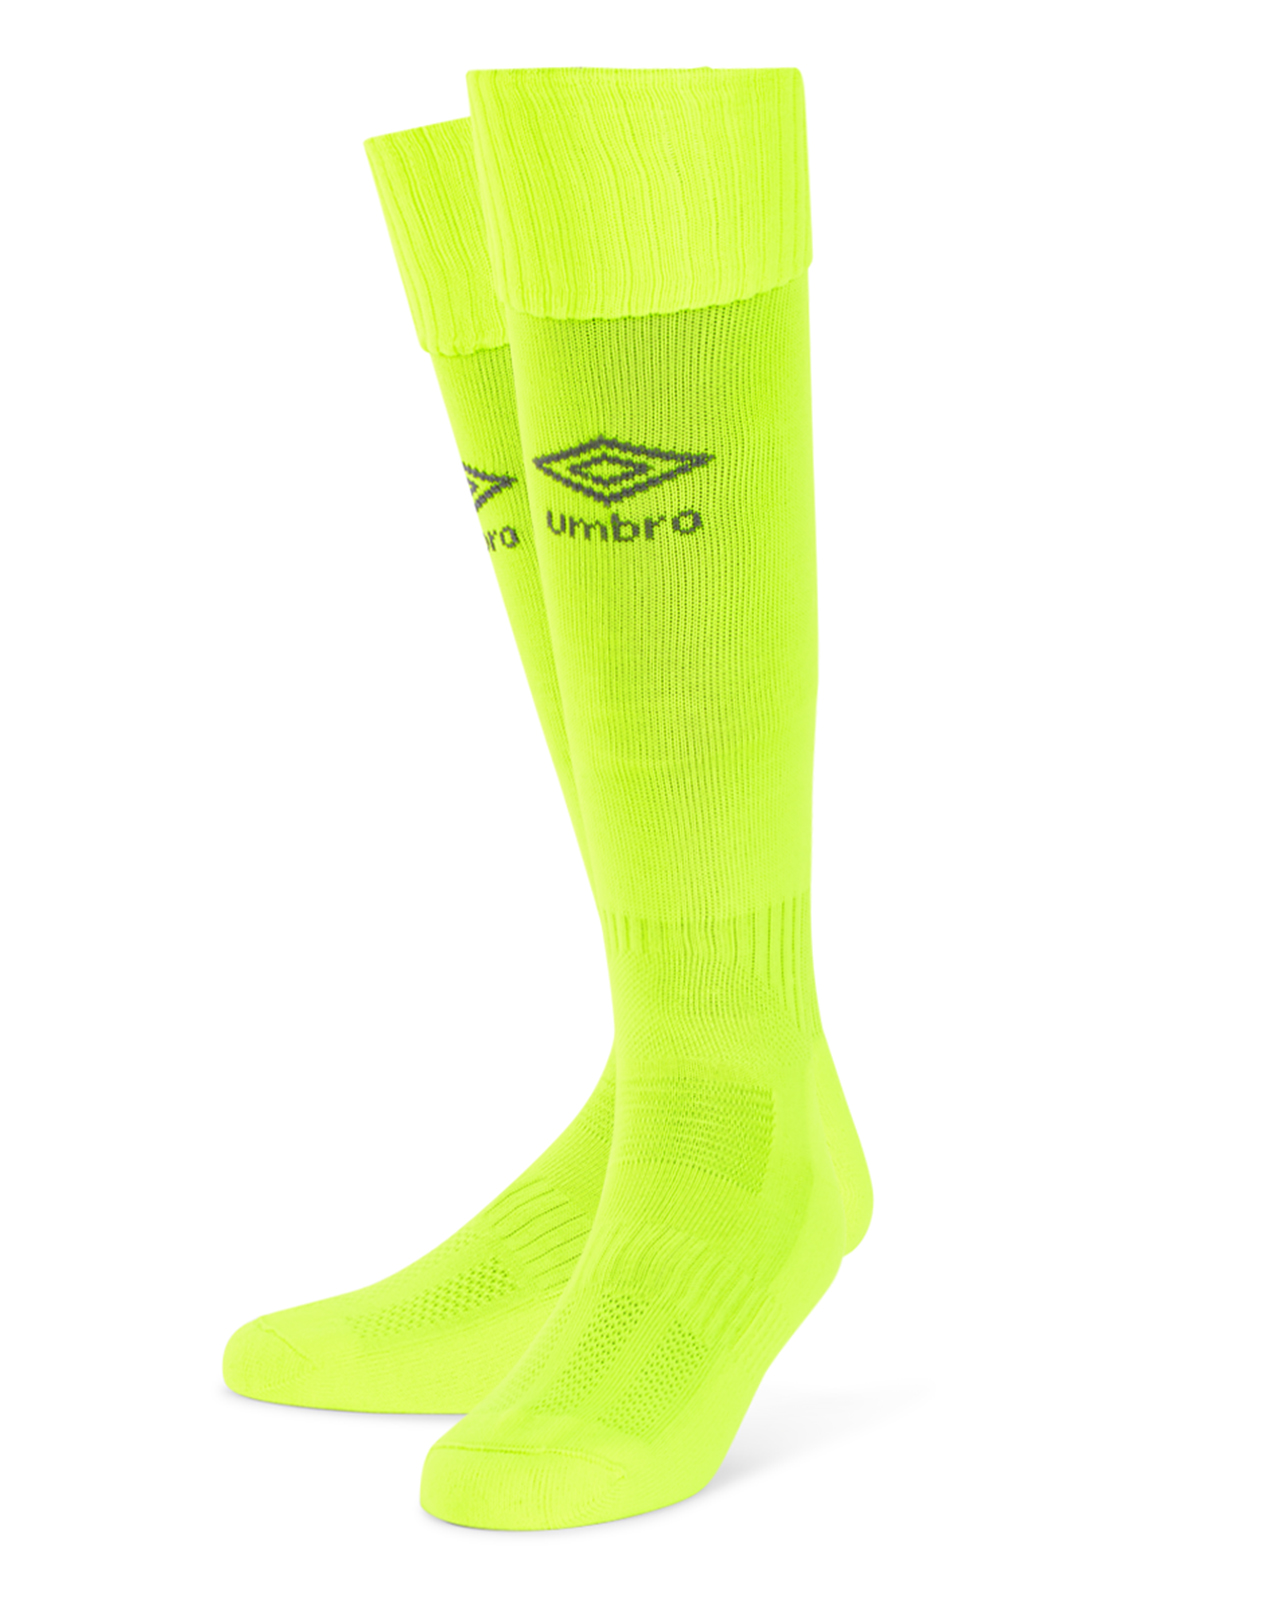 Umbro Classico football sock in safety yellow with carbon Diamond logo on the front